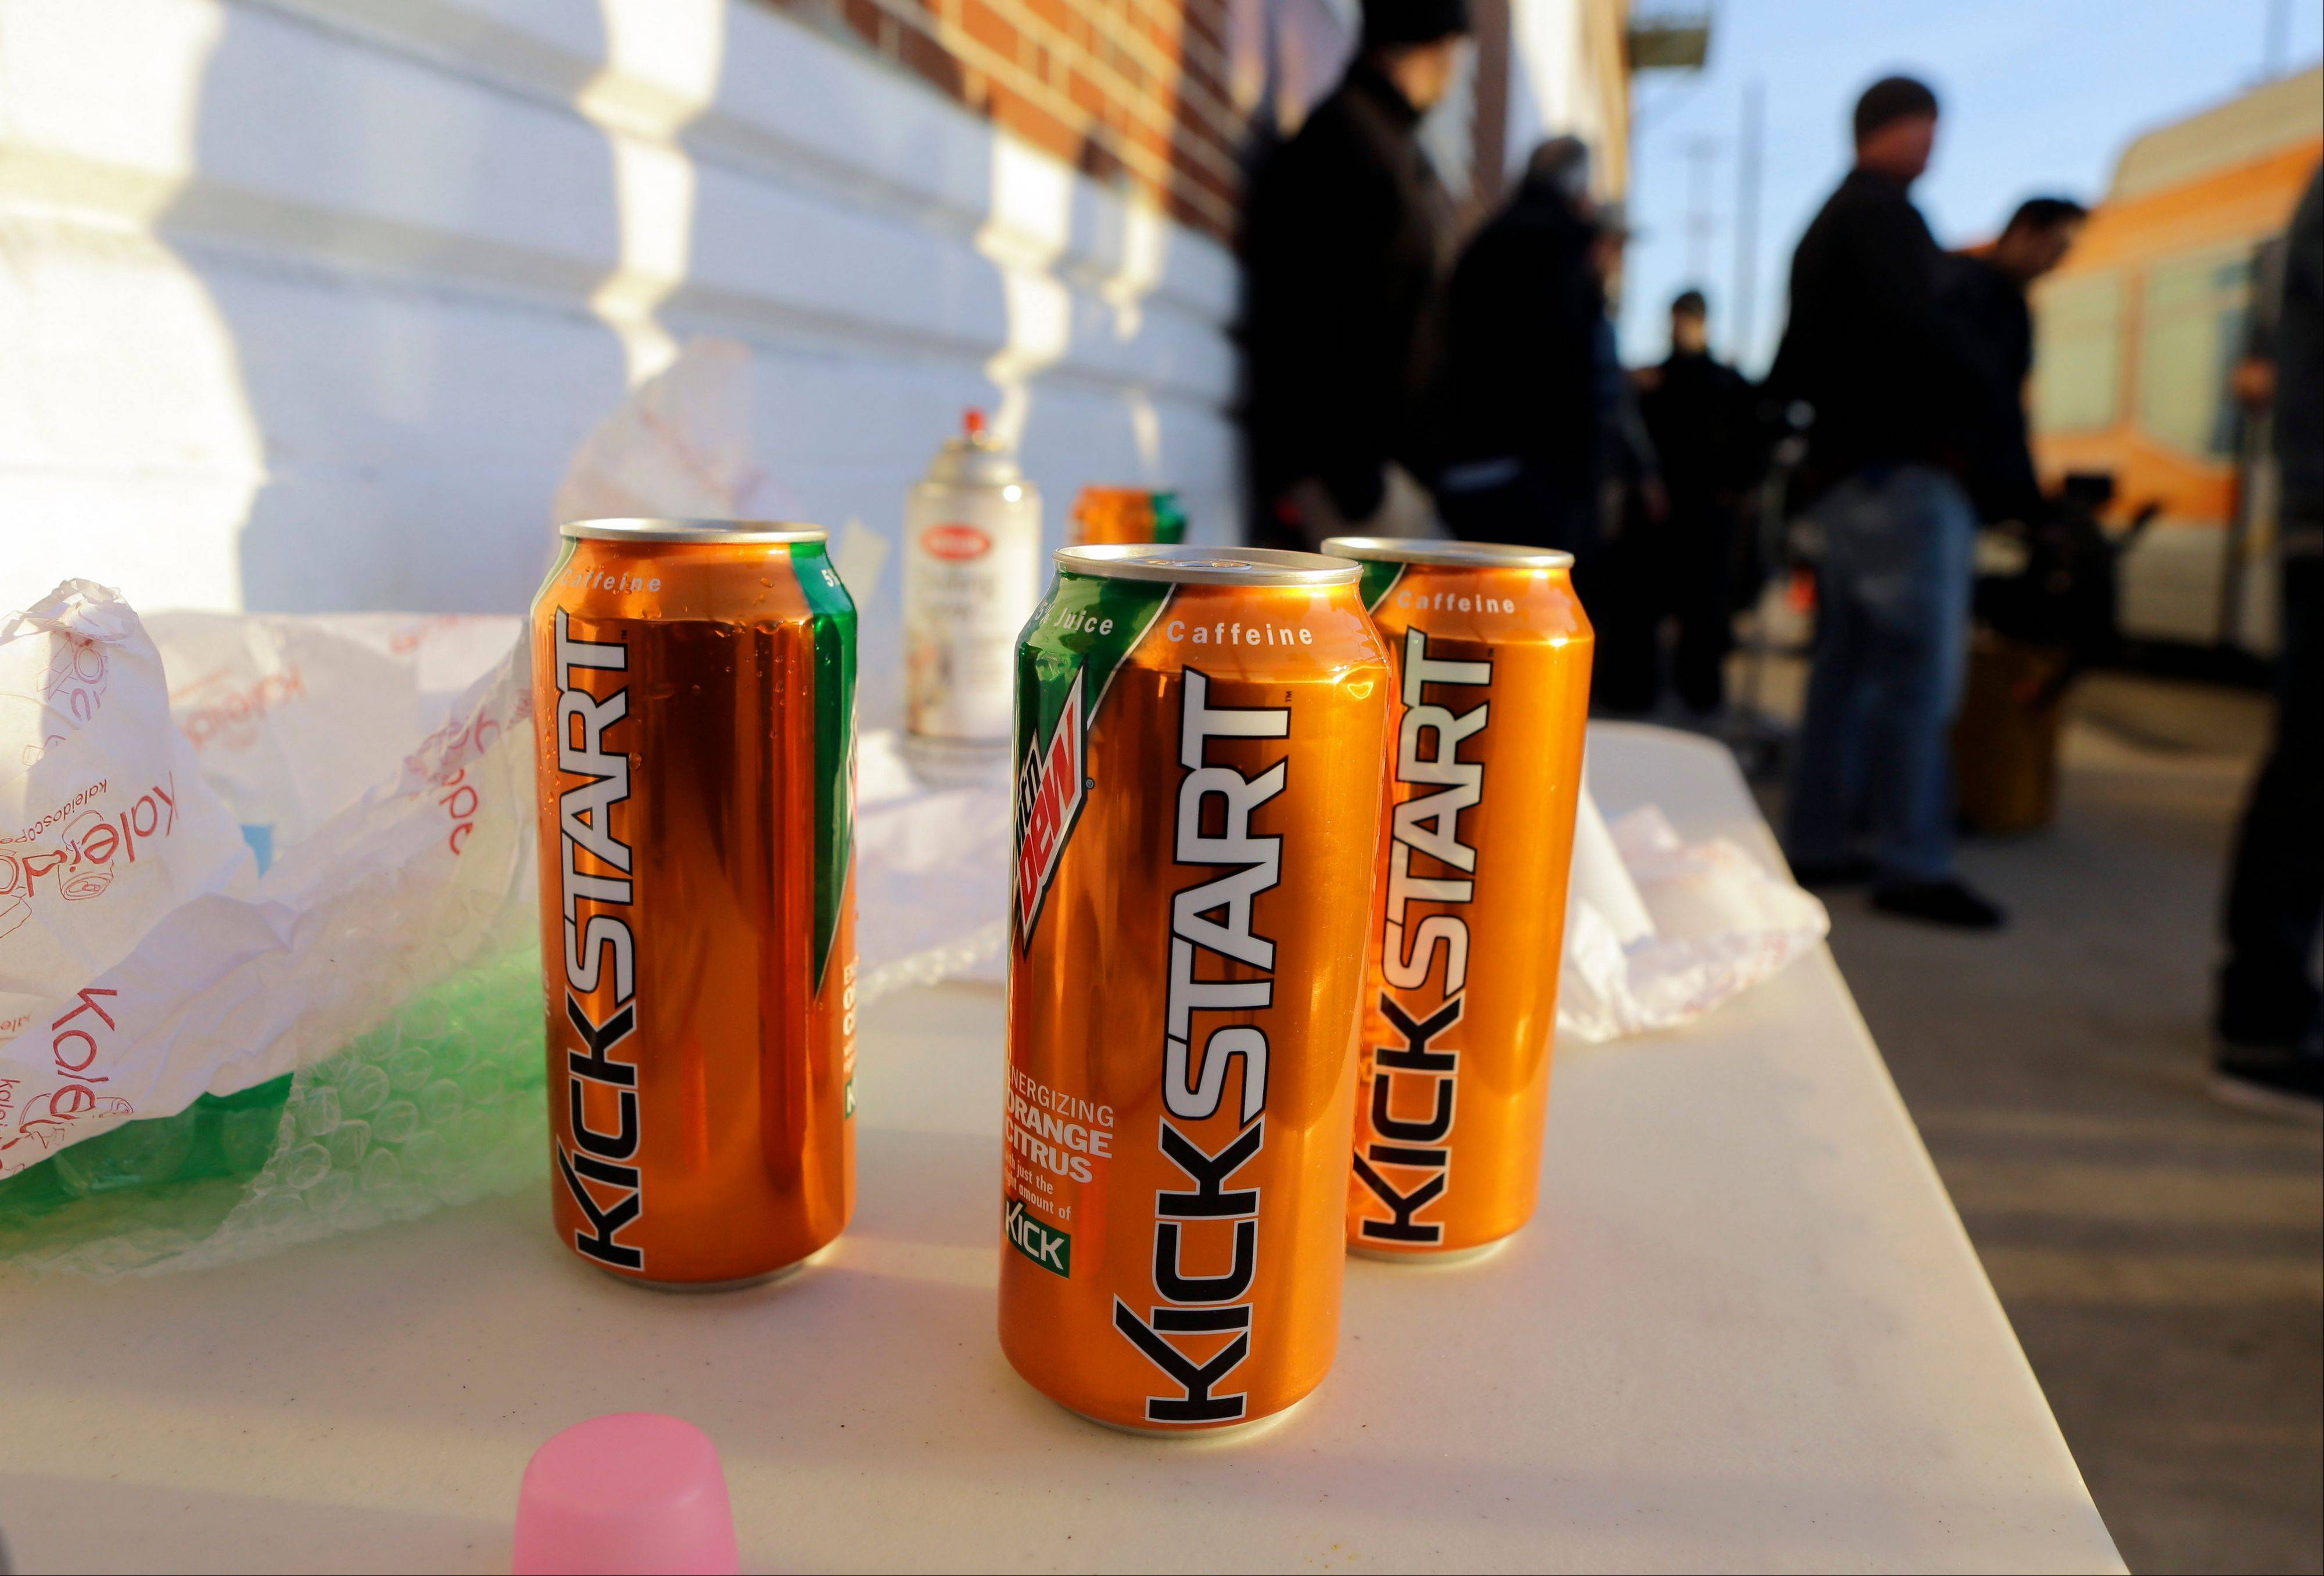 PepsiCo Inc. is set to roll out the new drink called Kickstart this month that has Mountain Dew flavor but is made with 5 percent juice and an extra jolt of caffeine and Vitamins B and C. The company is hoping to grow sales by reaching Mountain Dew fans at a new time of day: morning.